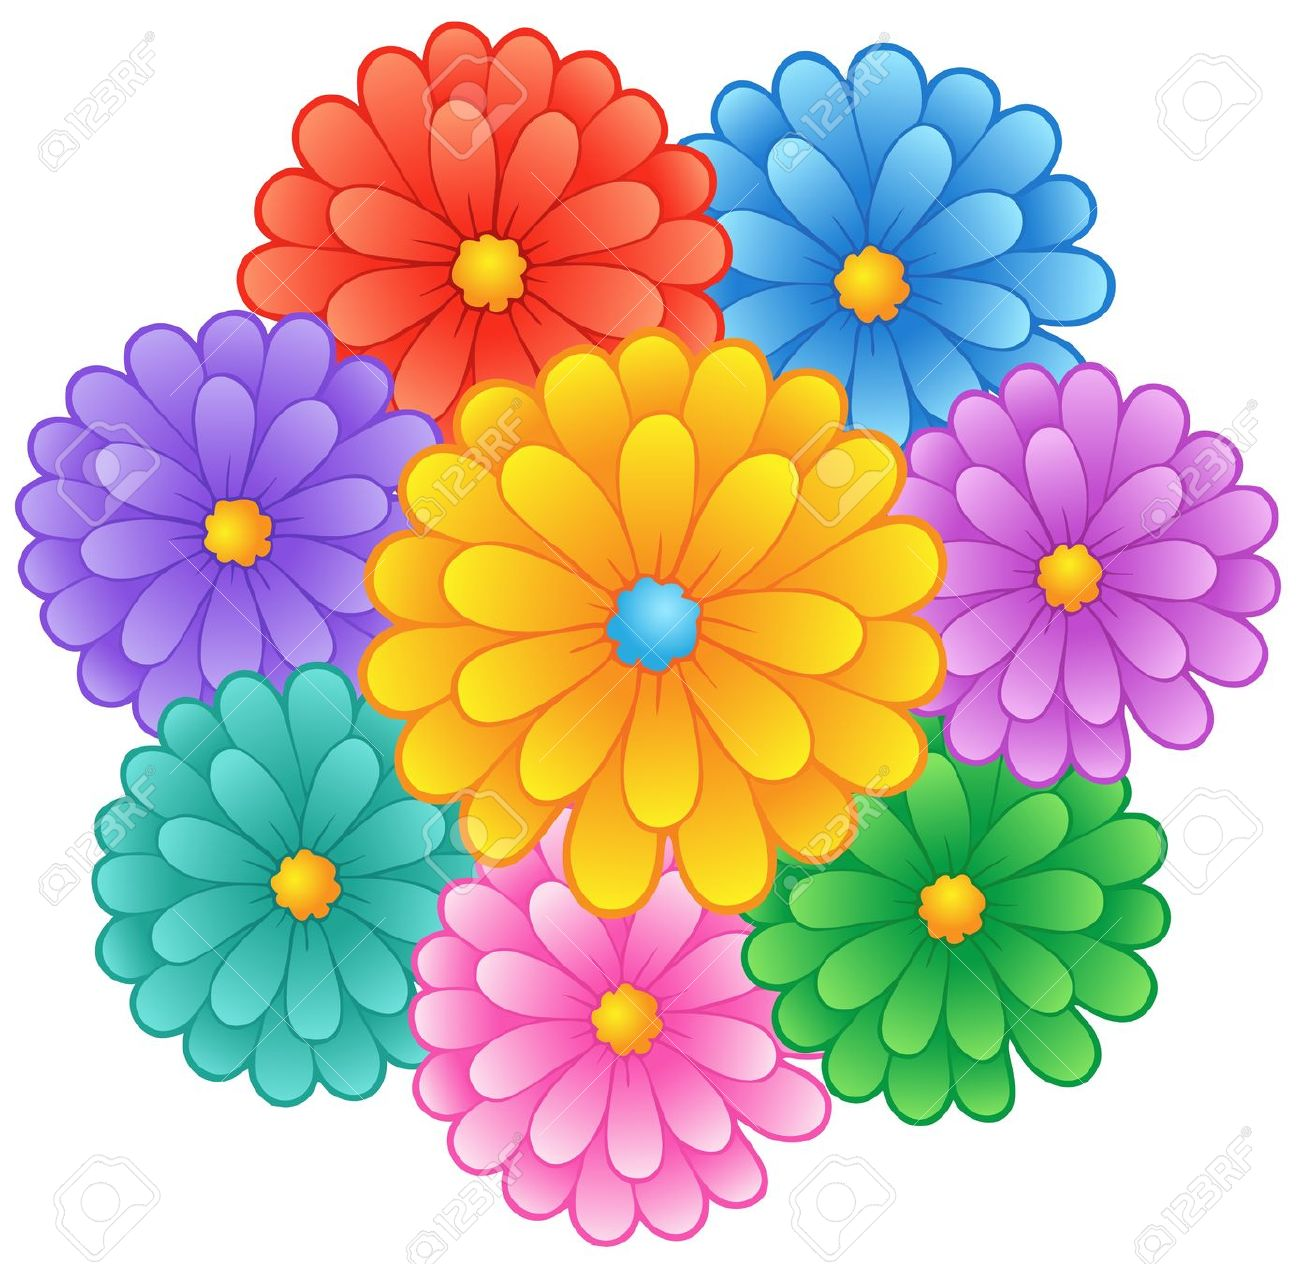 Flowers theme clipart clipground cartoon pictures of flowers mightylinksfo